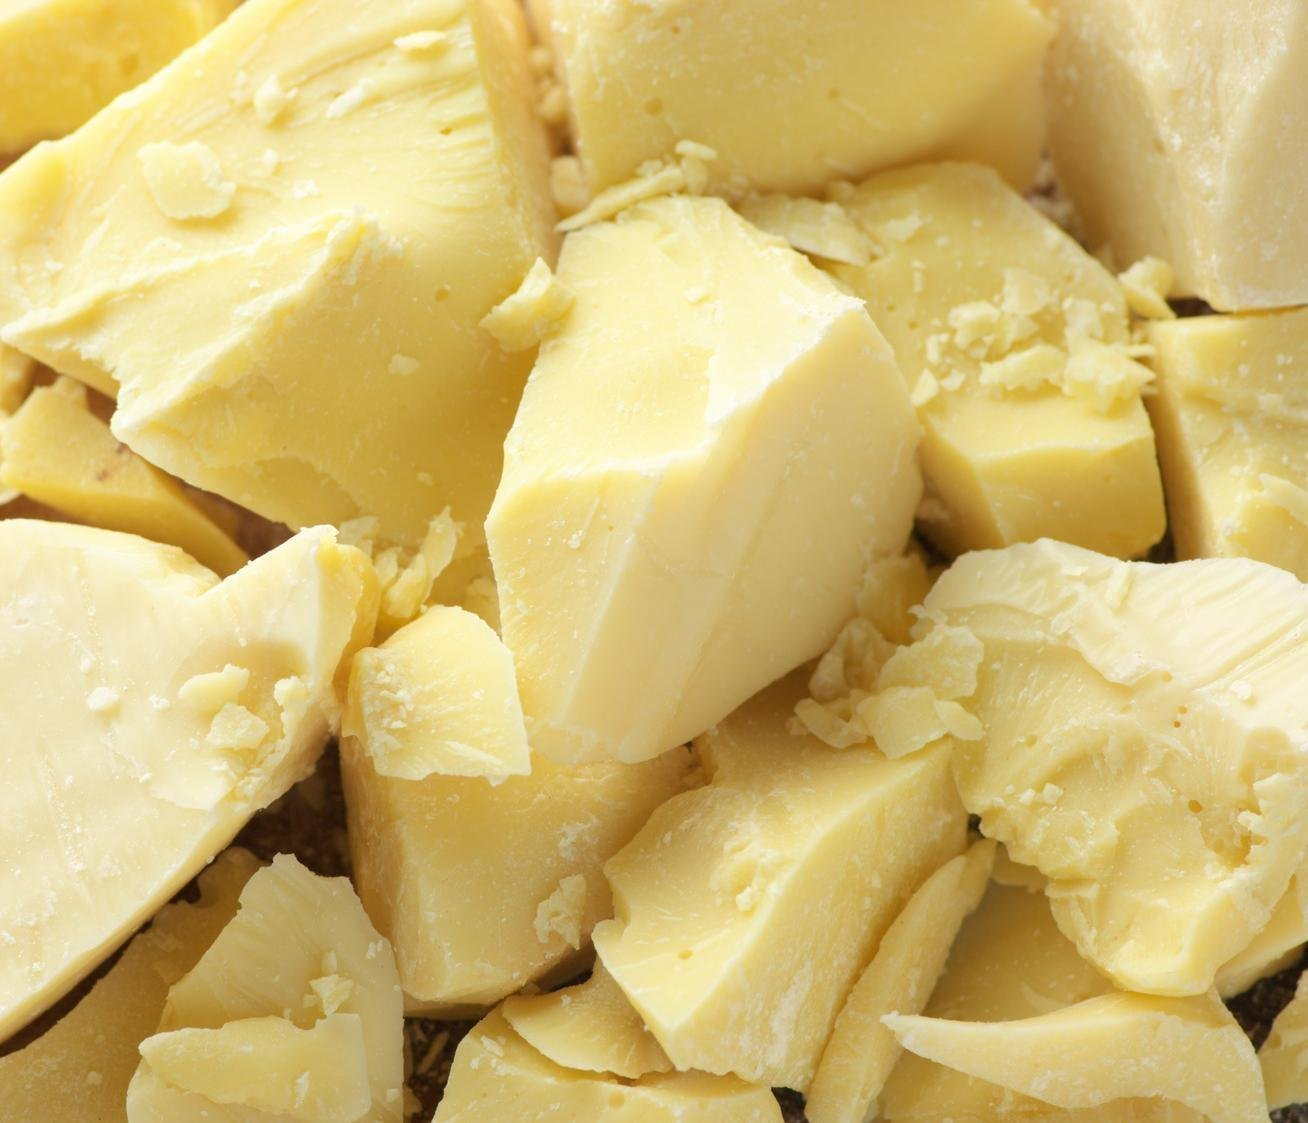 Cocoa Butter Food-Grade Pure Natural Unrefined 1 Kg ($1.05/oz) ROCKETROBIN.CA INC.